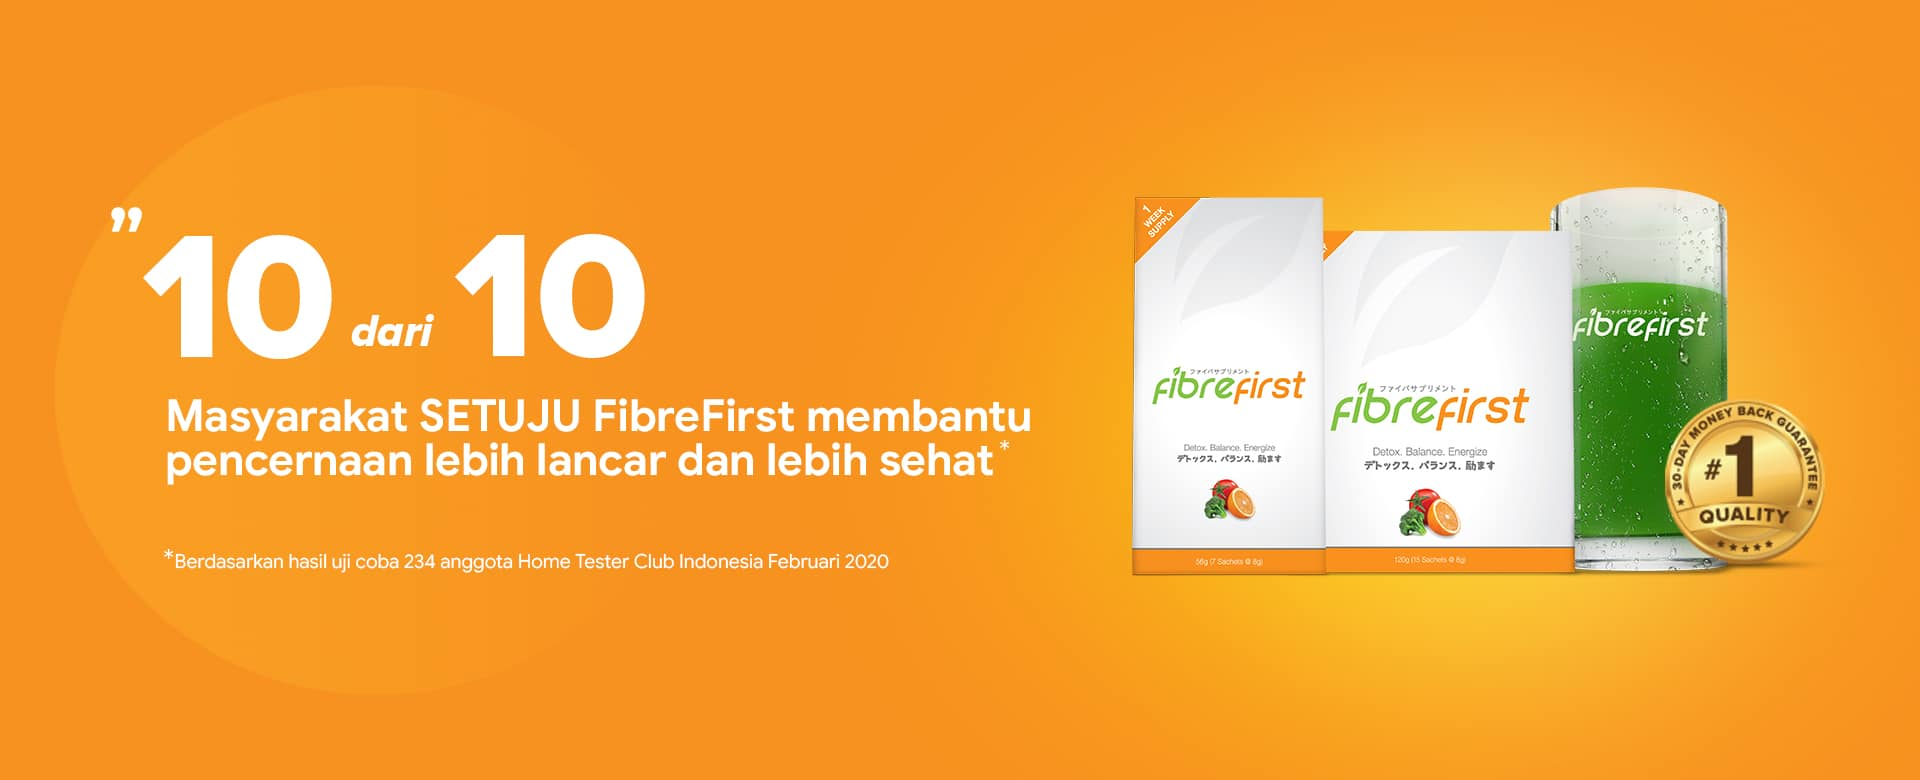 FibreFirst - Home Tester Review